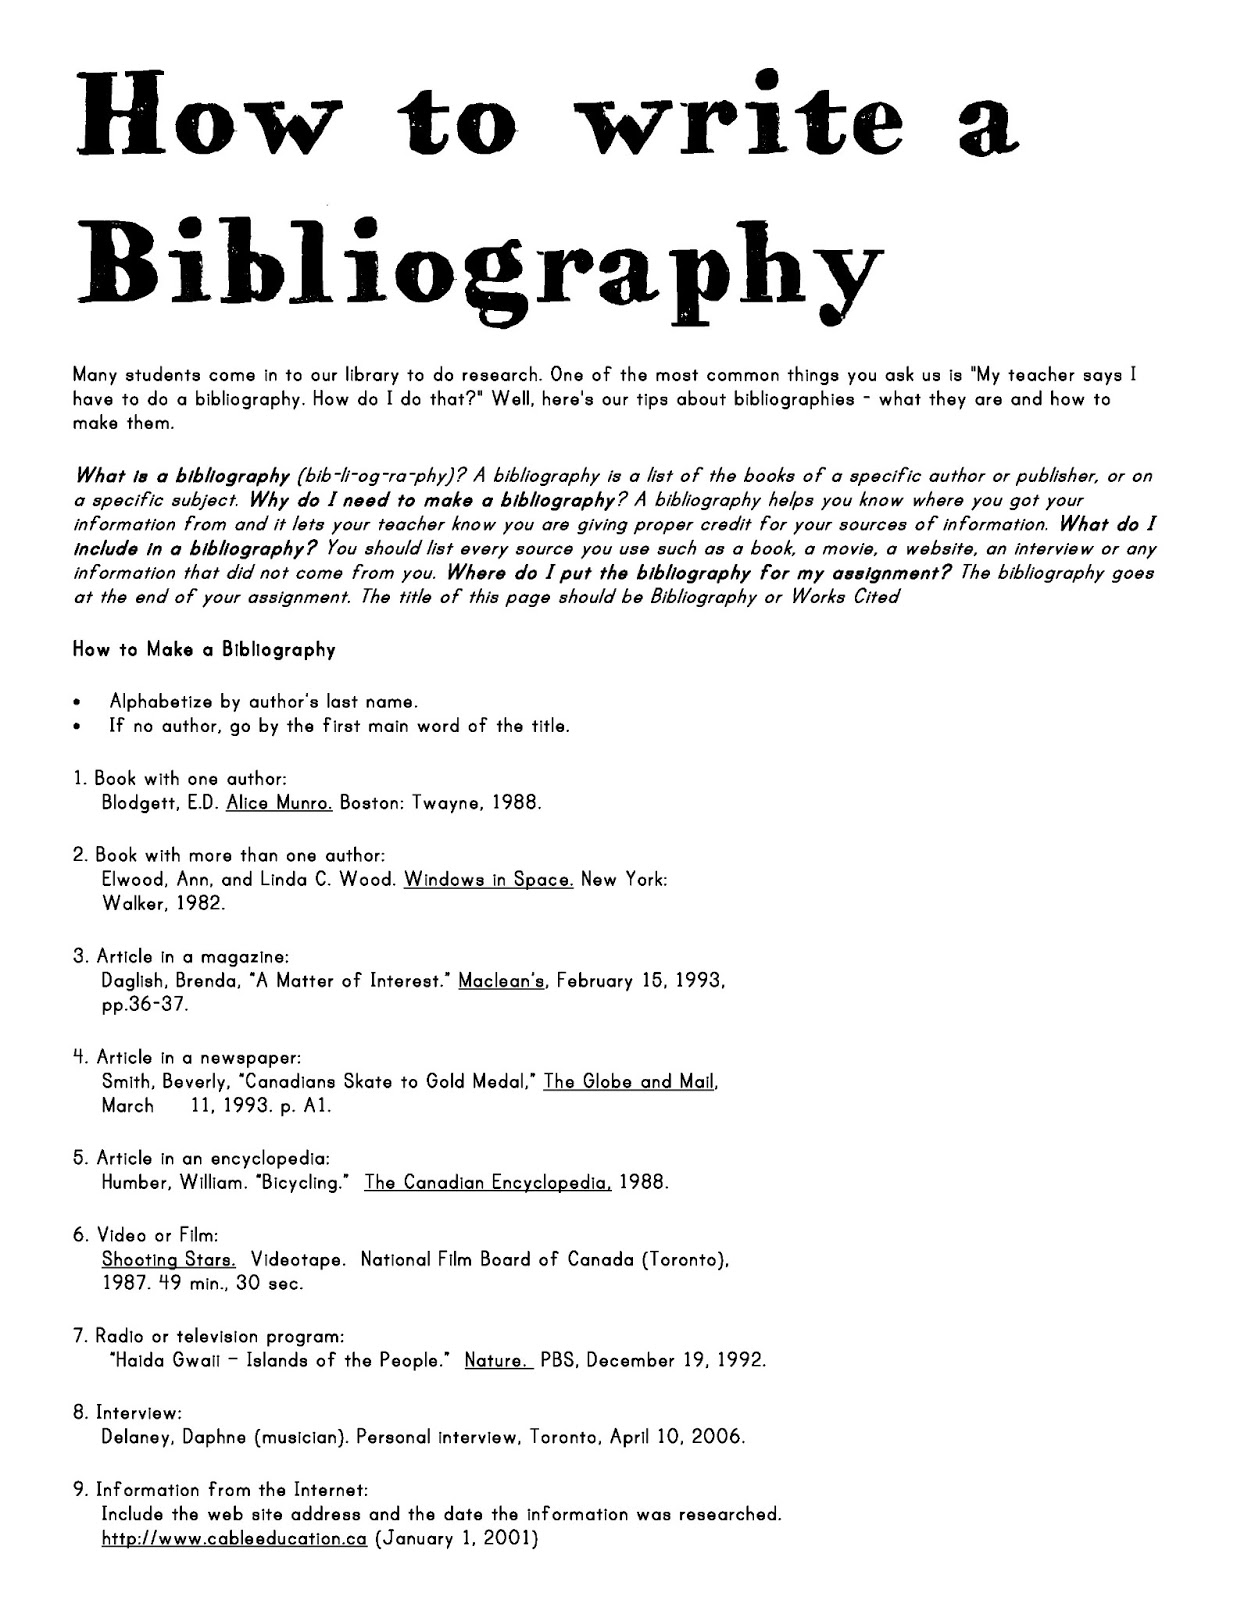 How to Write a Bibliography?